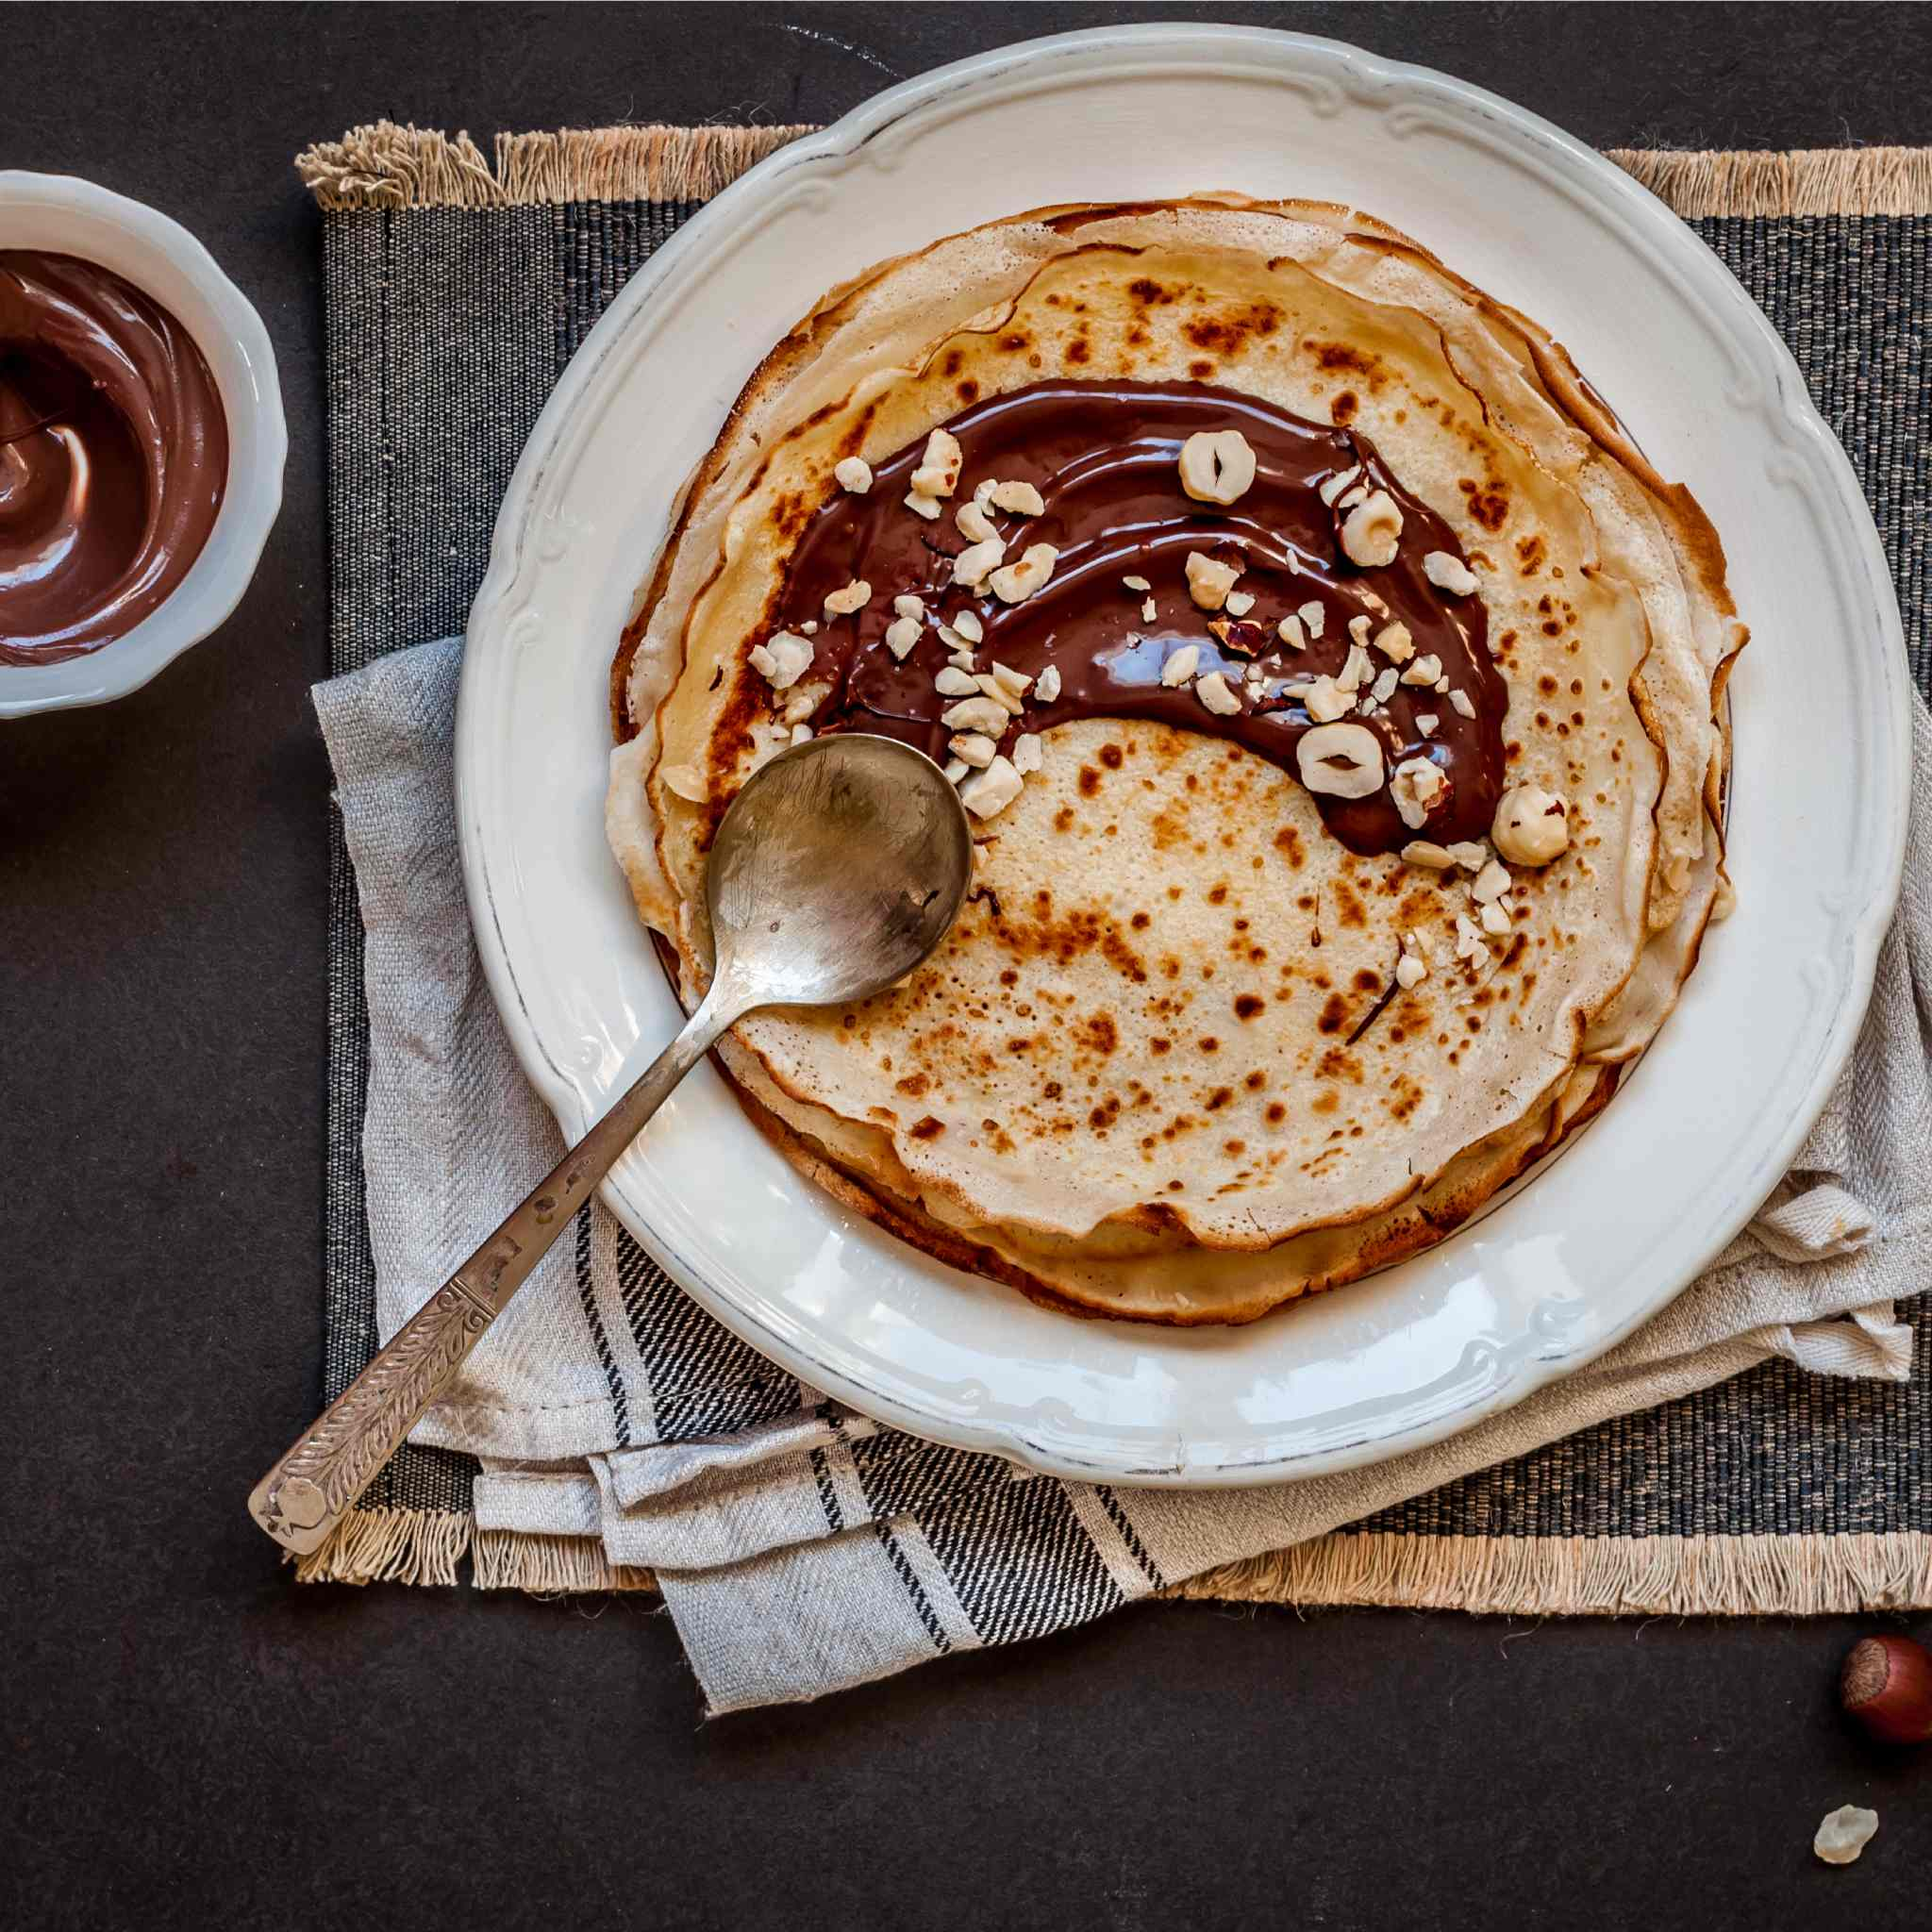 Stack of pancakes spread with Nutella and topped with crushed hazelnuts